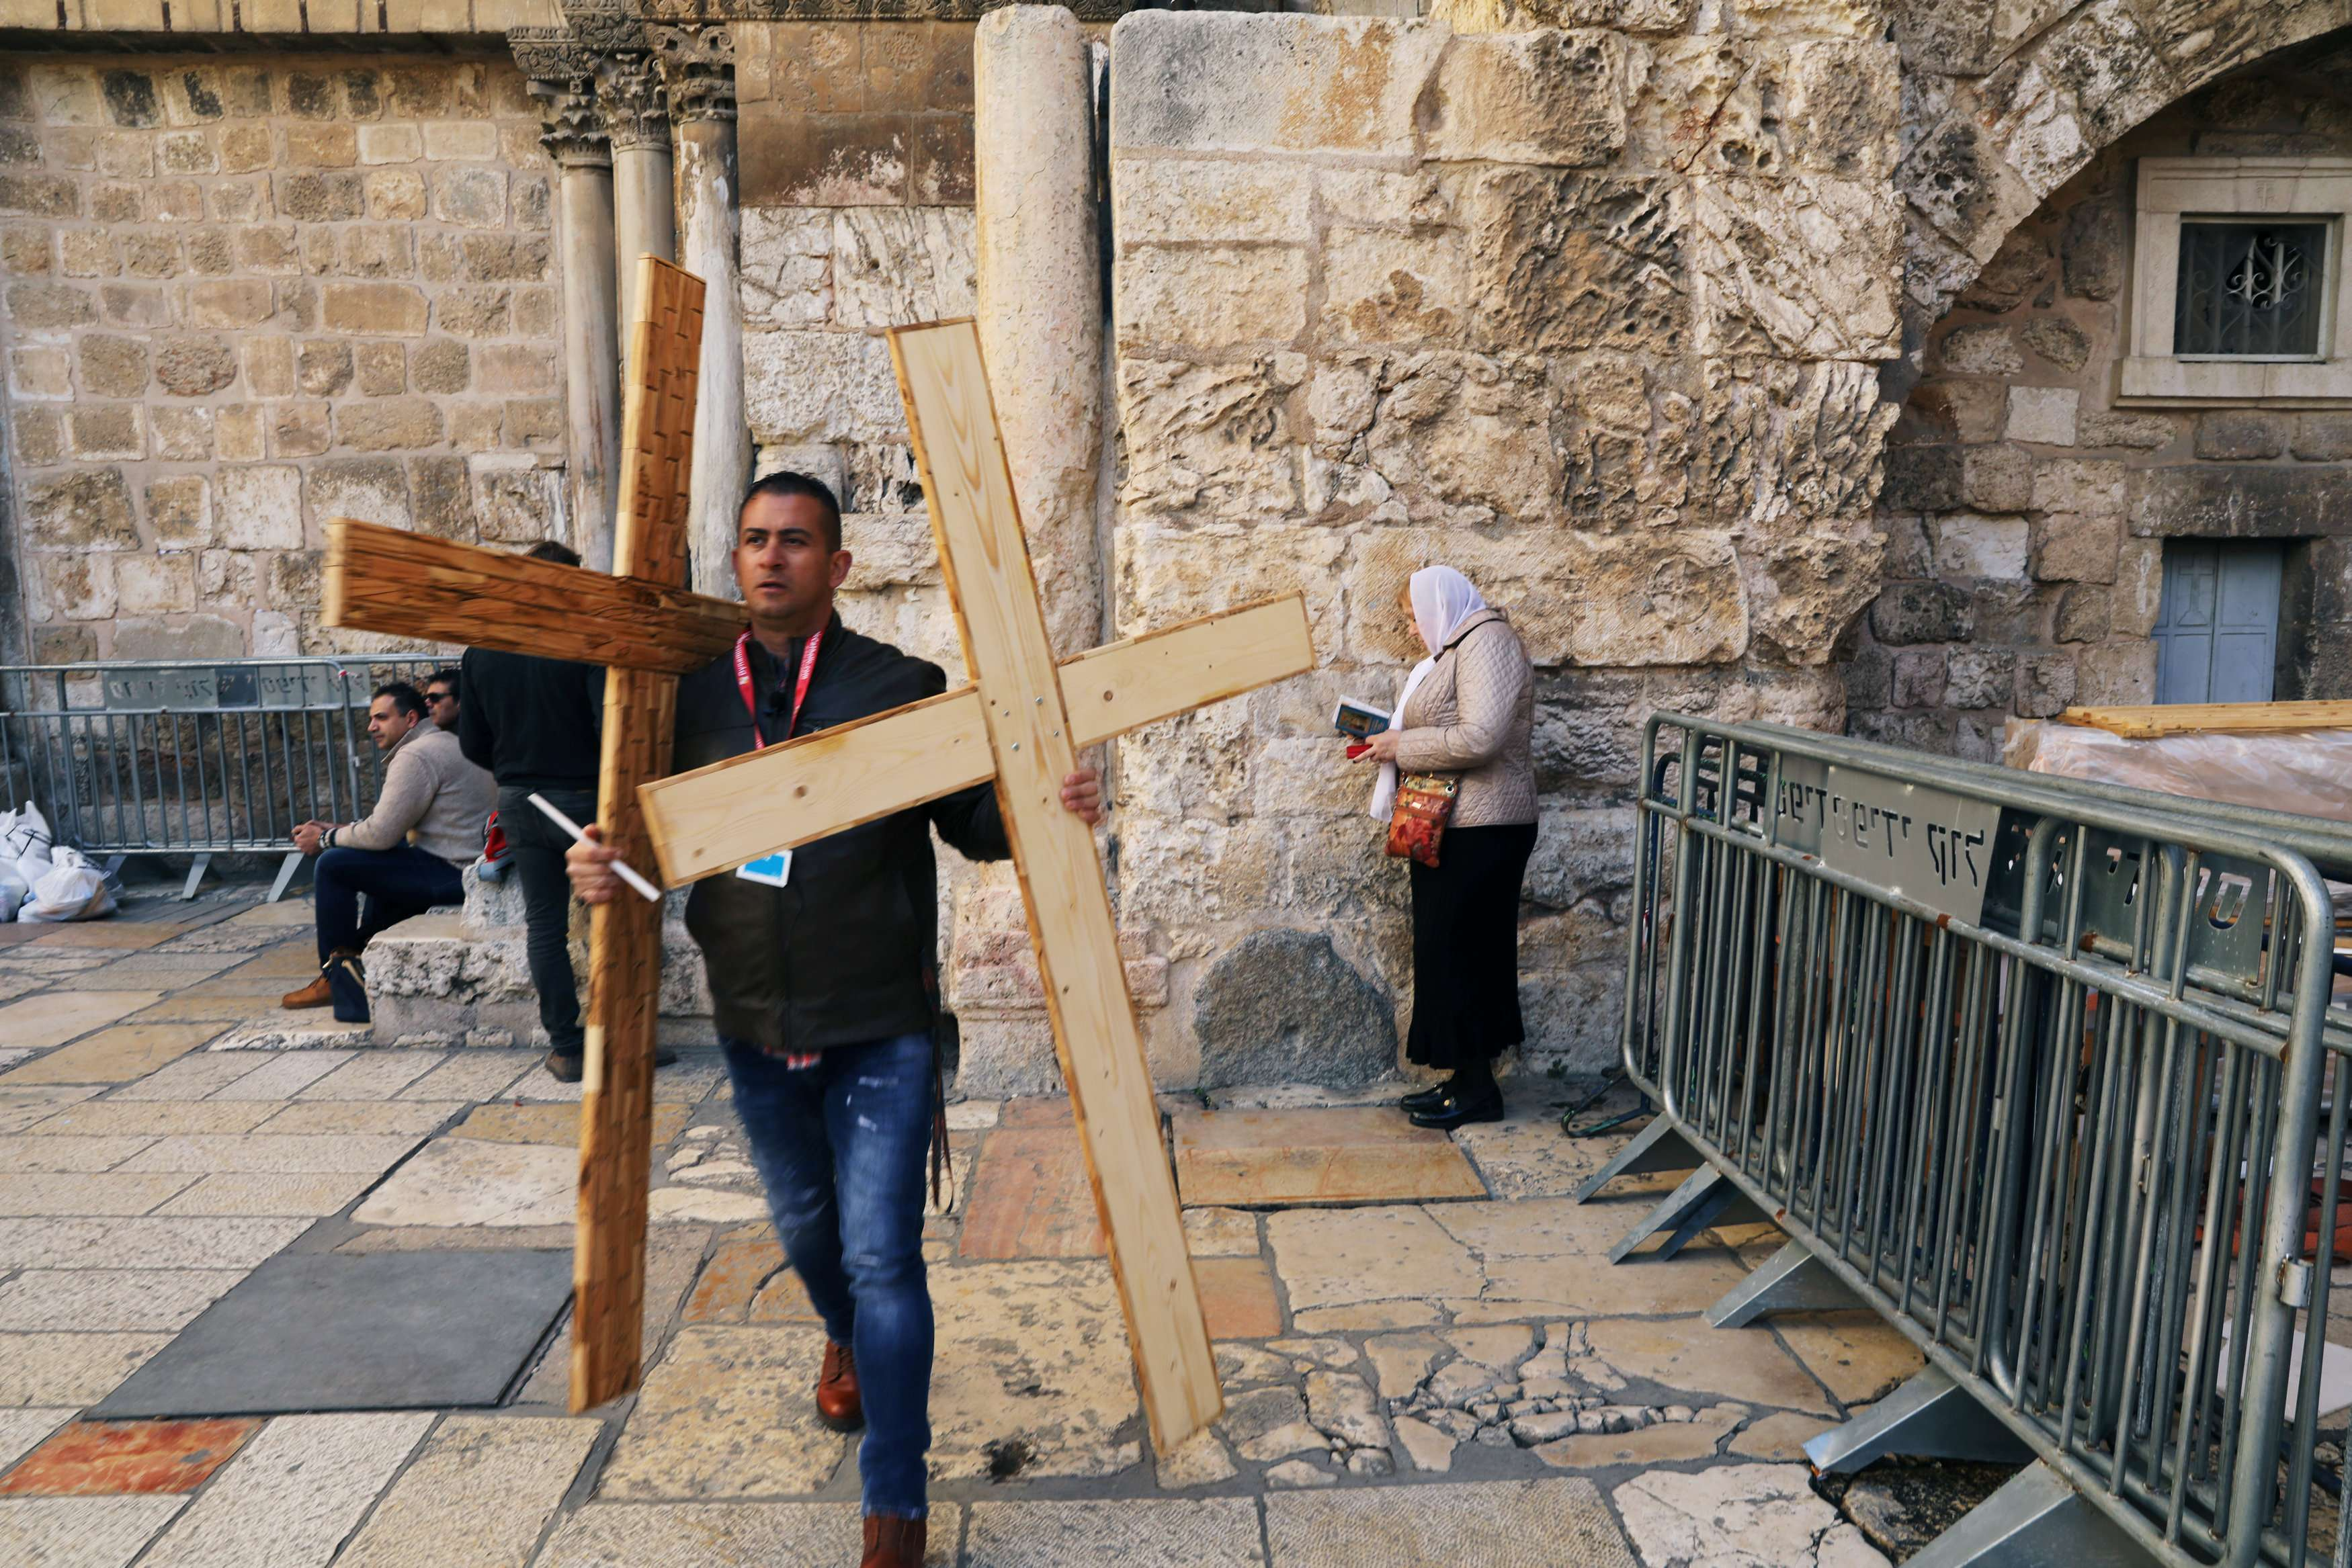 A man carries wooden crosses near the entrance to the Church of the Holy Sepulchre in Jerusalem's Old City, on February 28.  (Reuters)